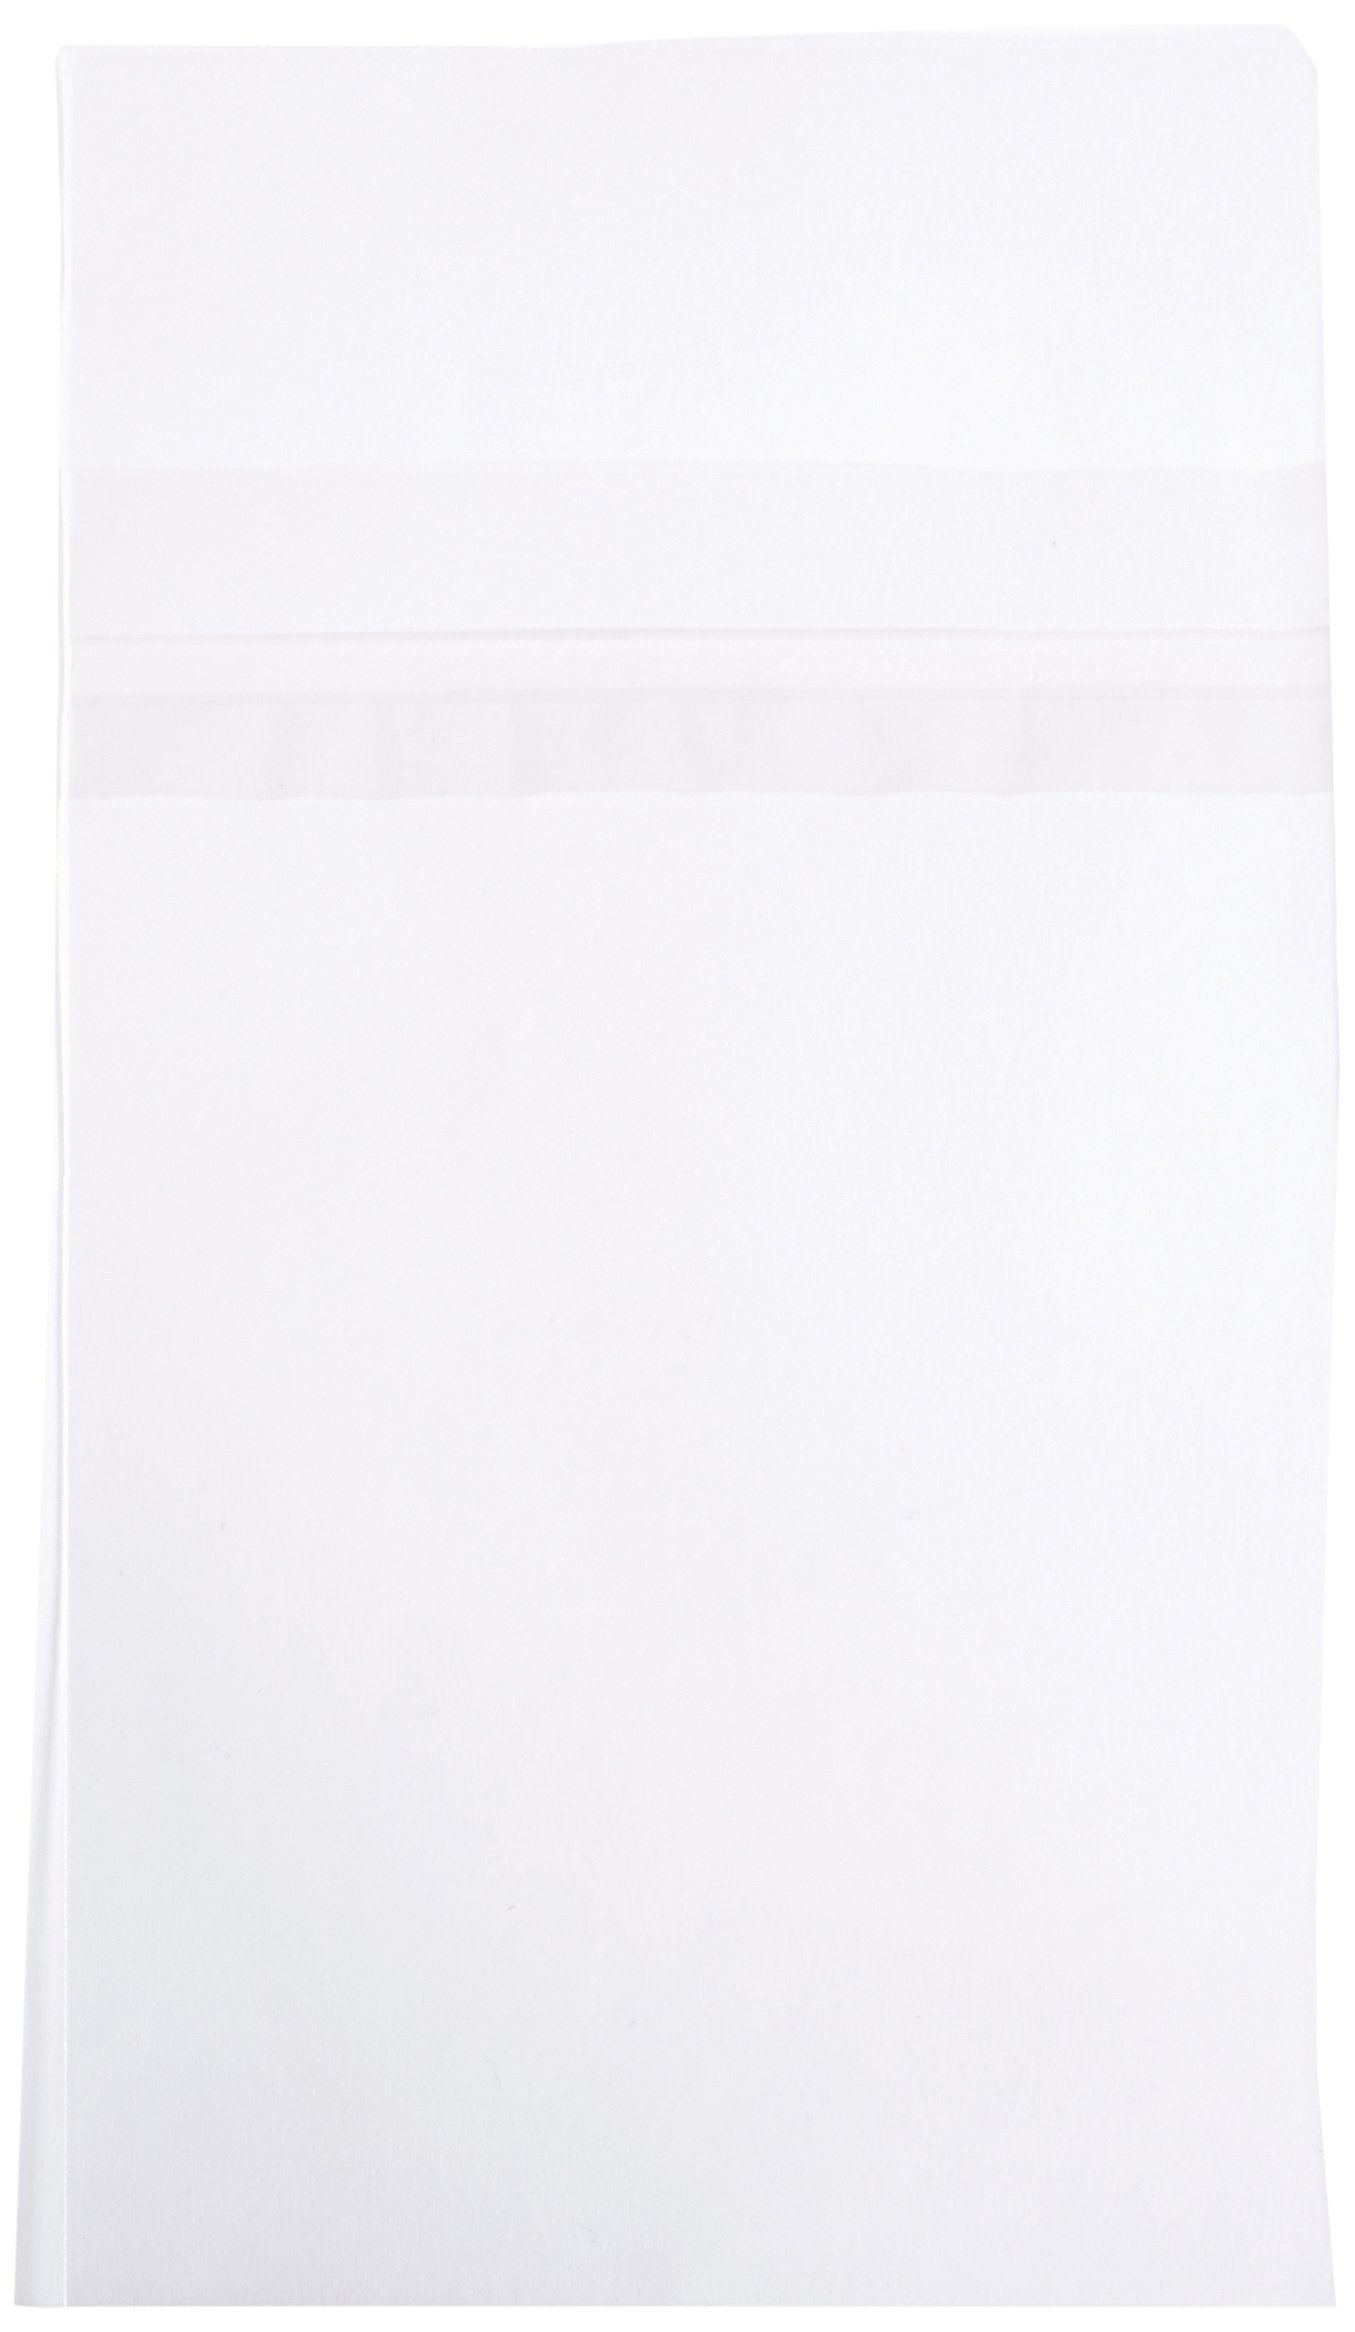 Archival Methods Crystal Clear Bags, Size: 4-7/8X6-1/8'', Safety Seal, Package Of 100. by Archival Methods